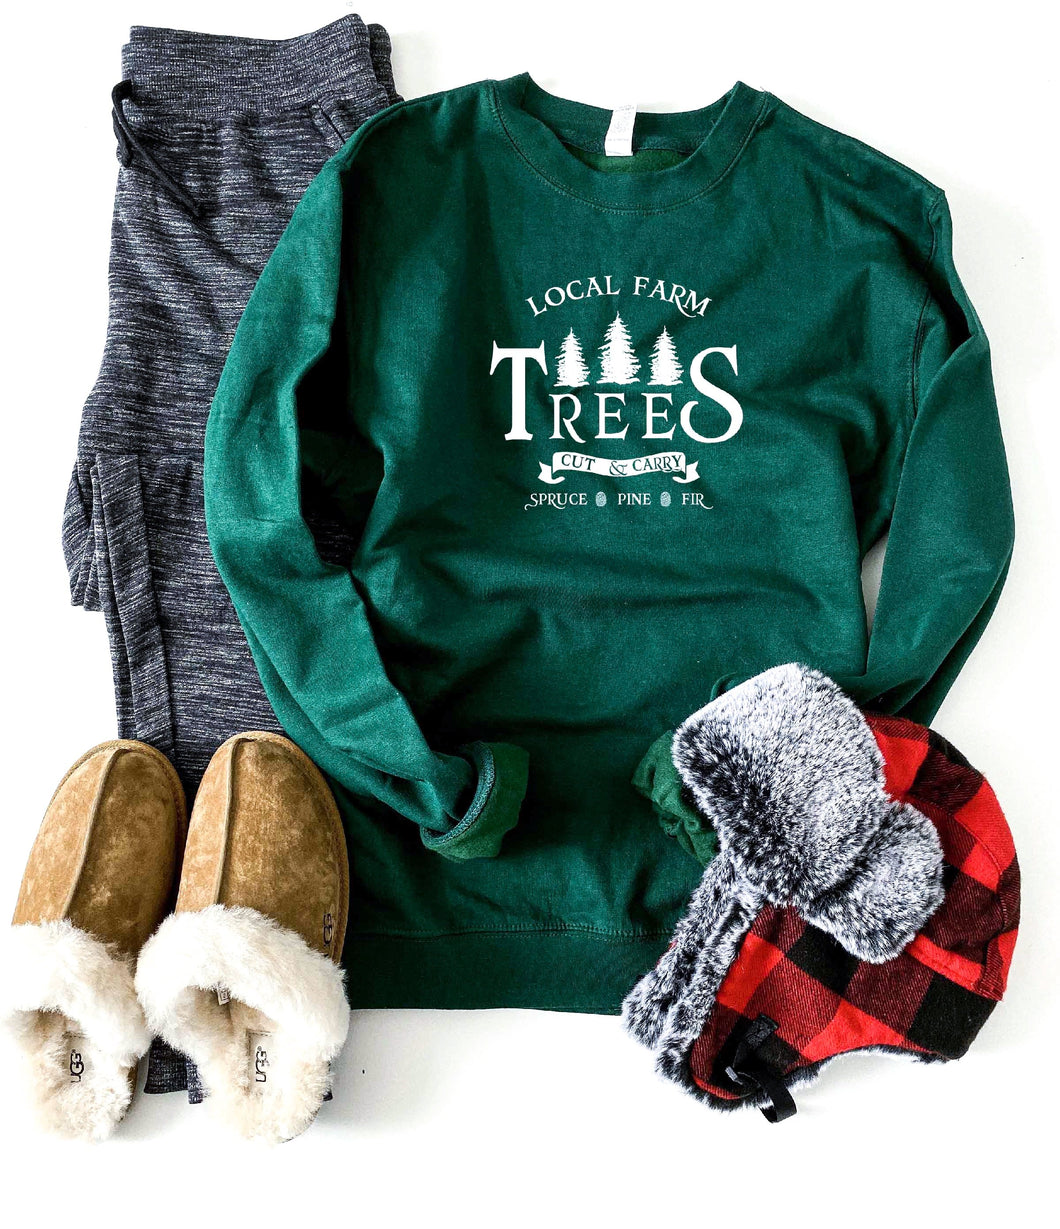 Local farm trees sweatshirt Holiday French Terry raglan Independent Trading company lightweight sweatshirt